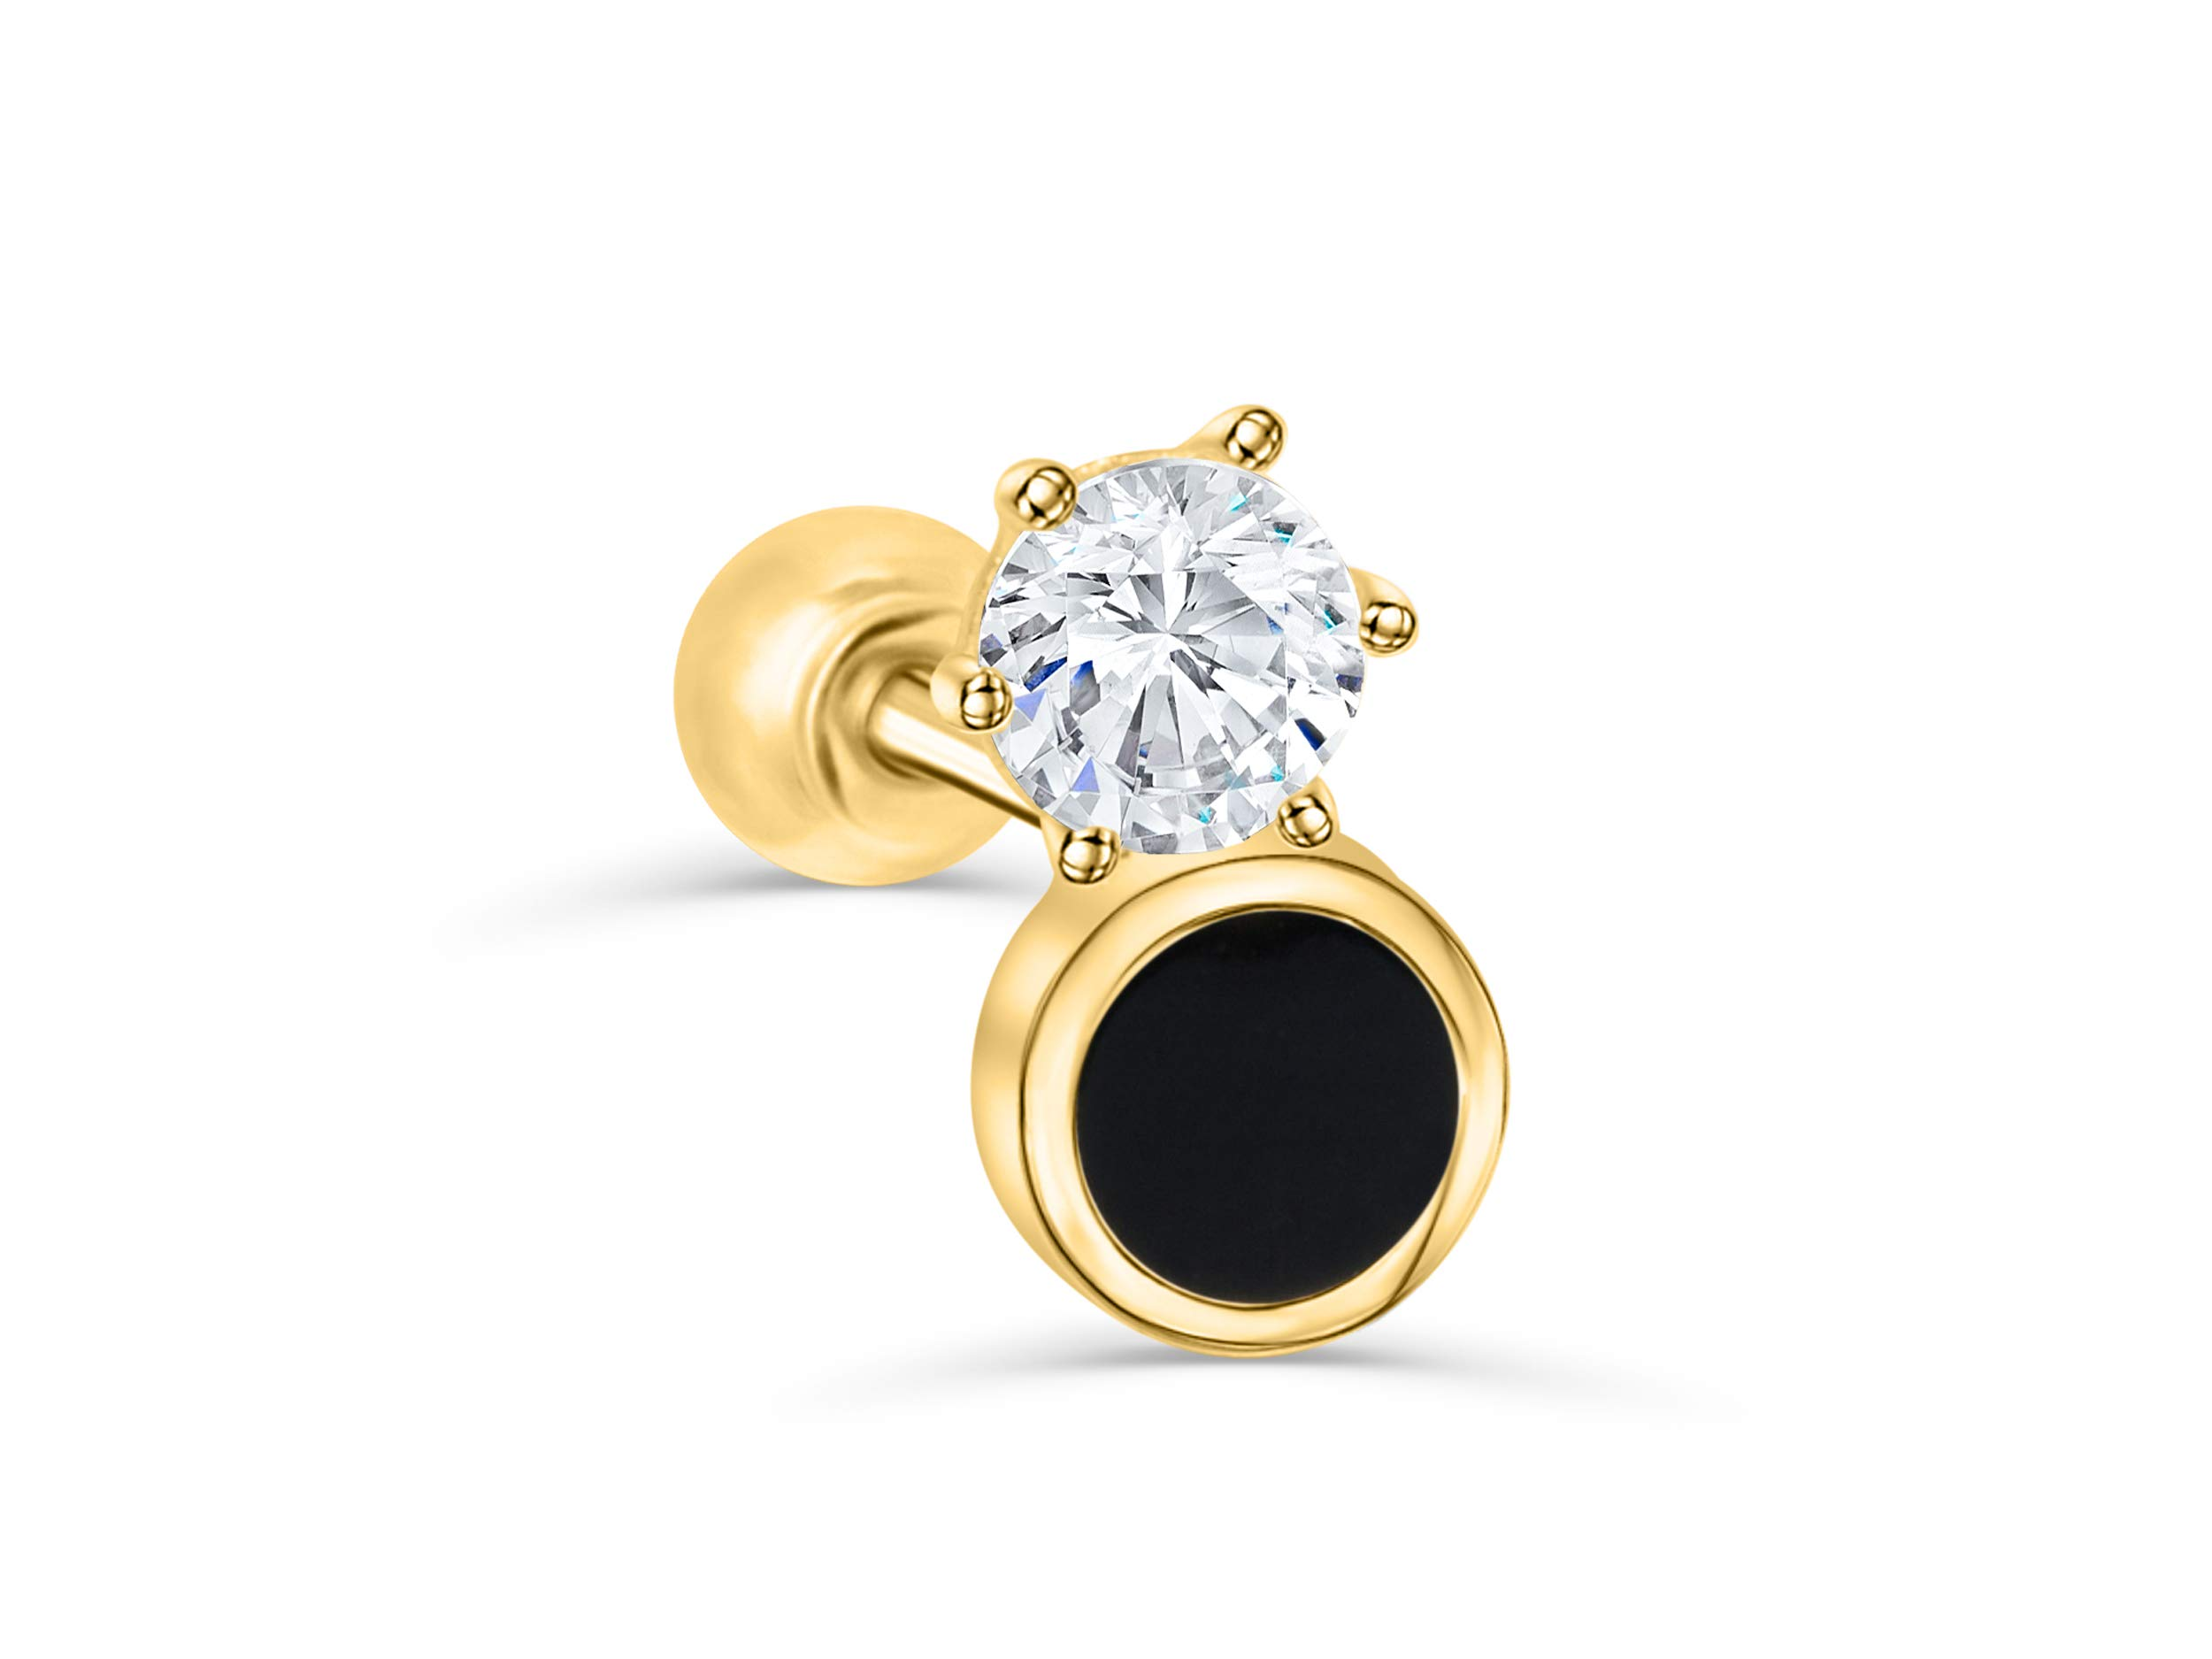 14K Solid Yellow Gold 5mm Tragus Conch Cartilage Jewelry Cz Circle Black Round Ear Studs Post Ball Earring Piercing For Women Sensitive Ears